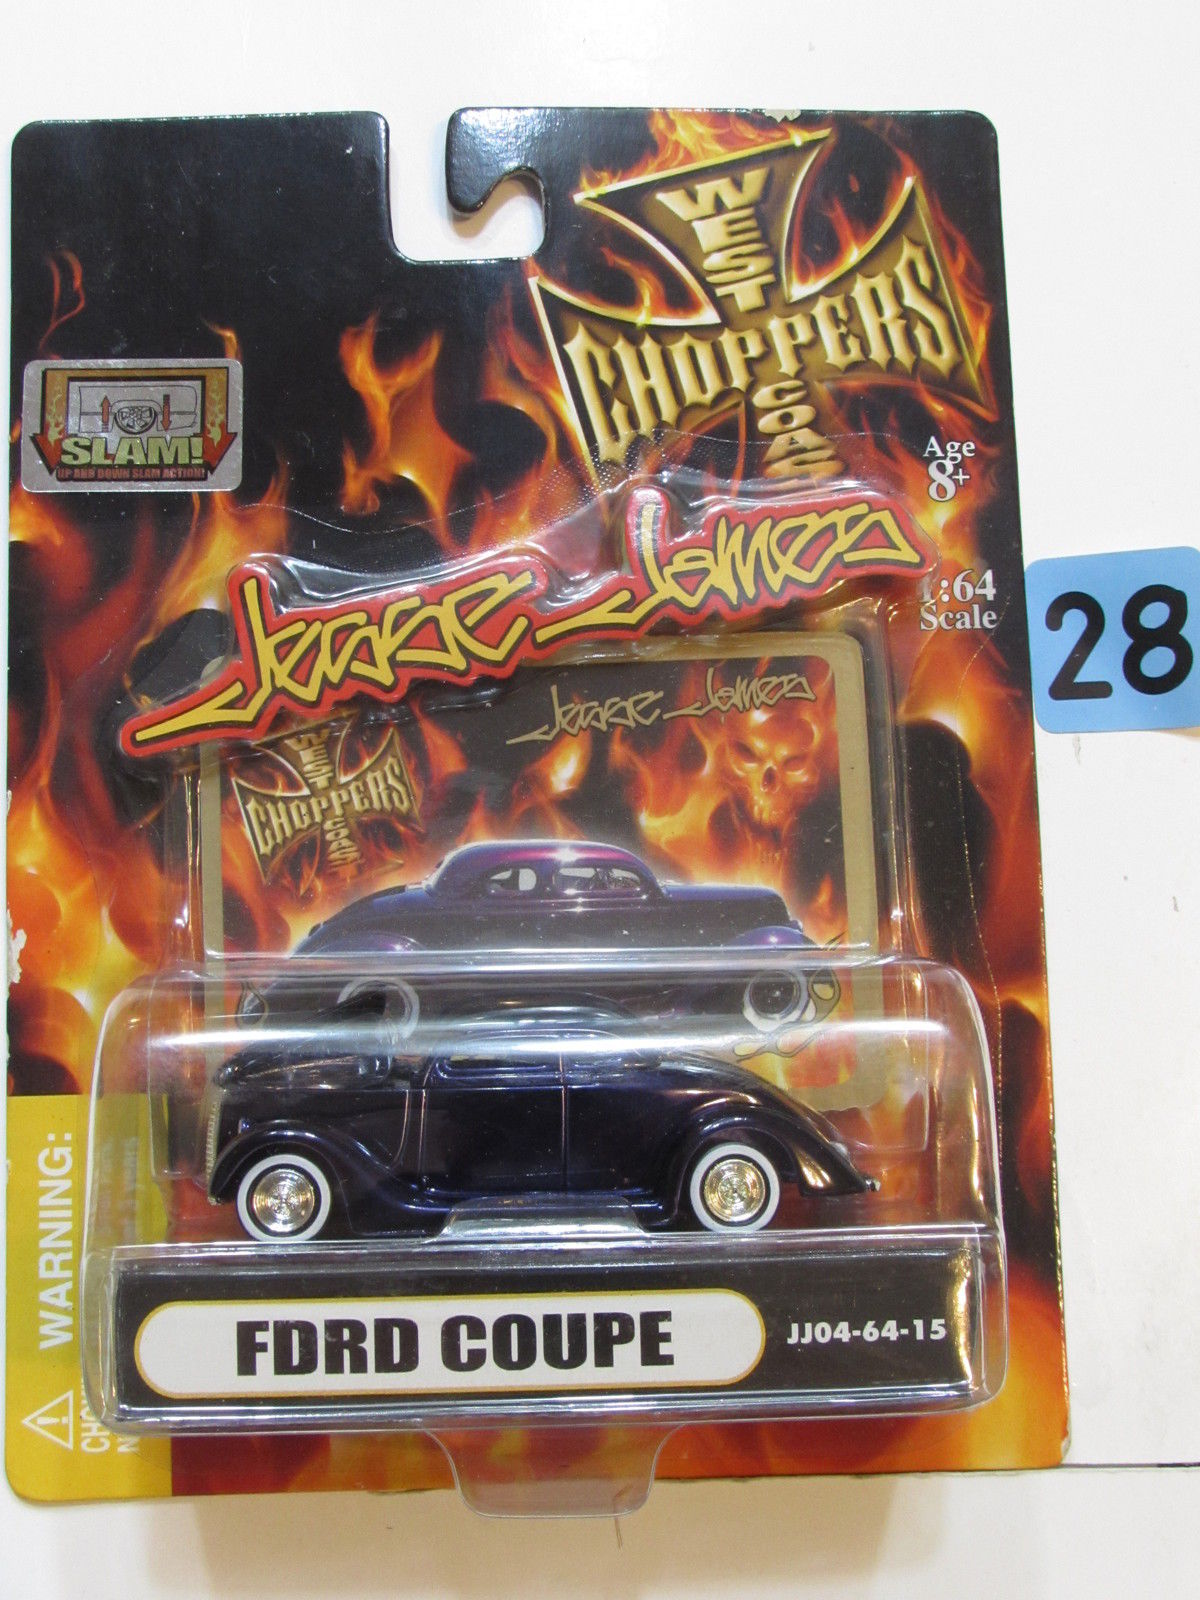 WEST COAST CHOPPERS JESSE JAMES - FORD COUPE